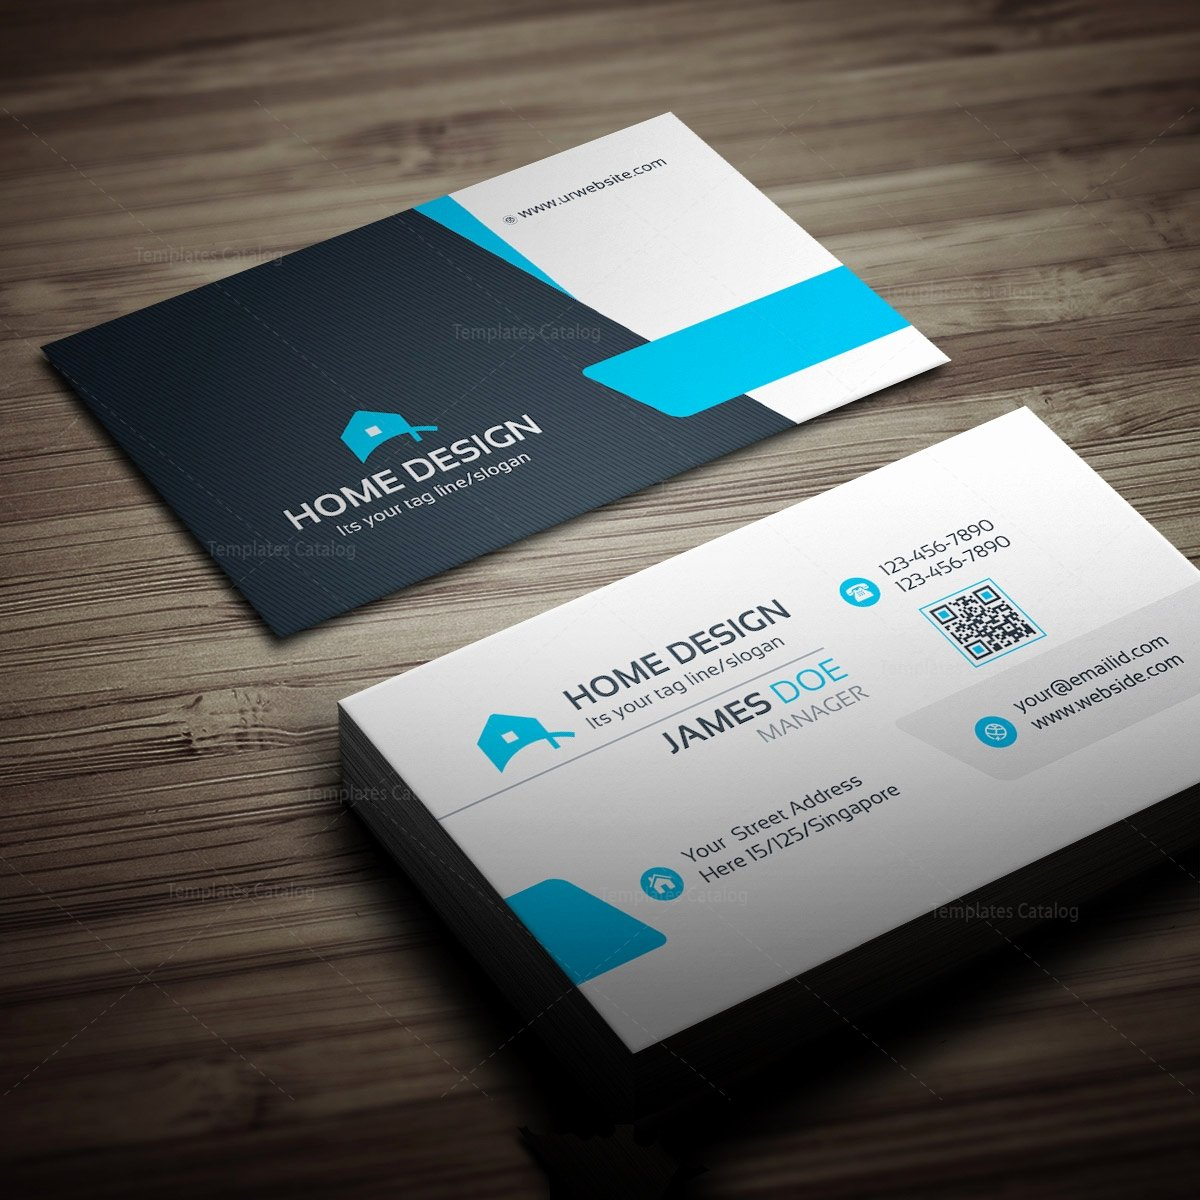 Business Card Layout Template Inspirational Home Design Business Card Template Template Catalog